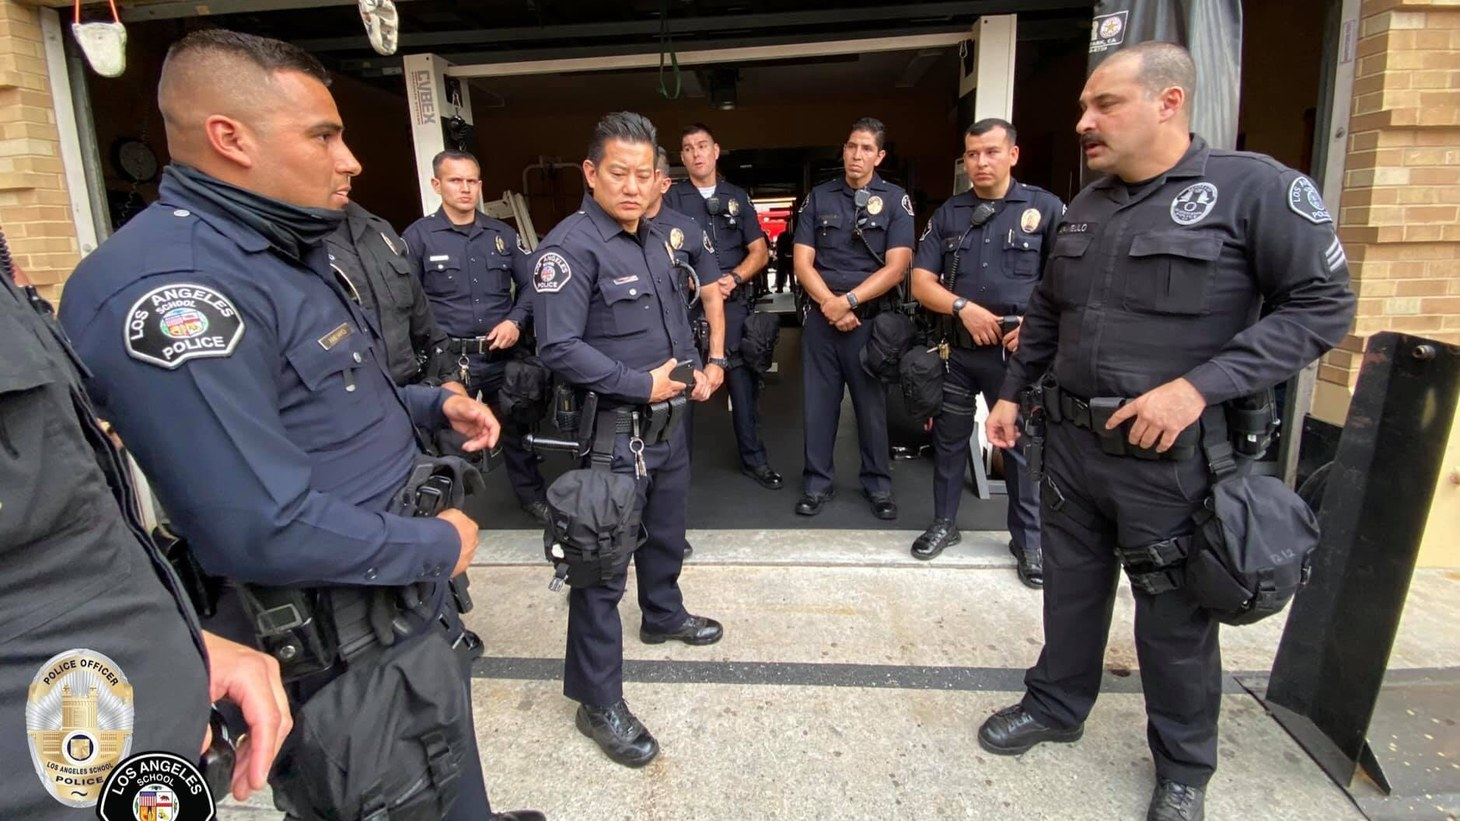 The LAUSD police force has more than 460 officers. Activists and the teachers union (UTLA) have called for that force to be eliminated.